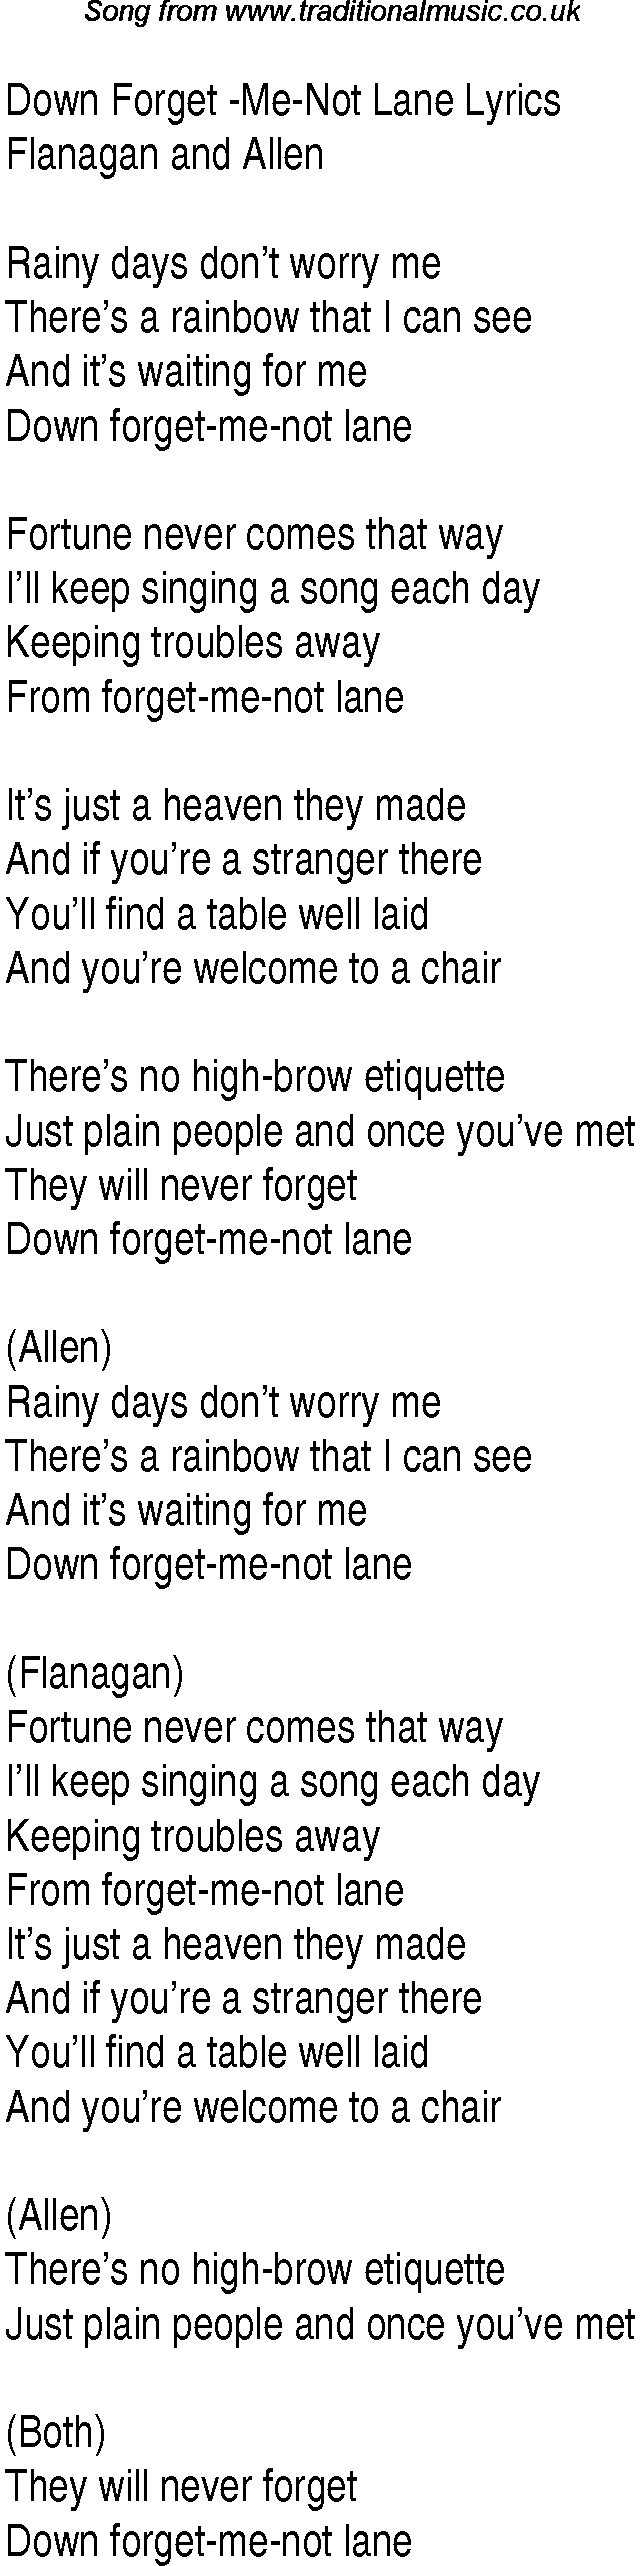 1940s top songs lyrics for down forget me not lane flanagan allen